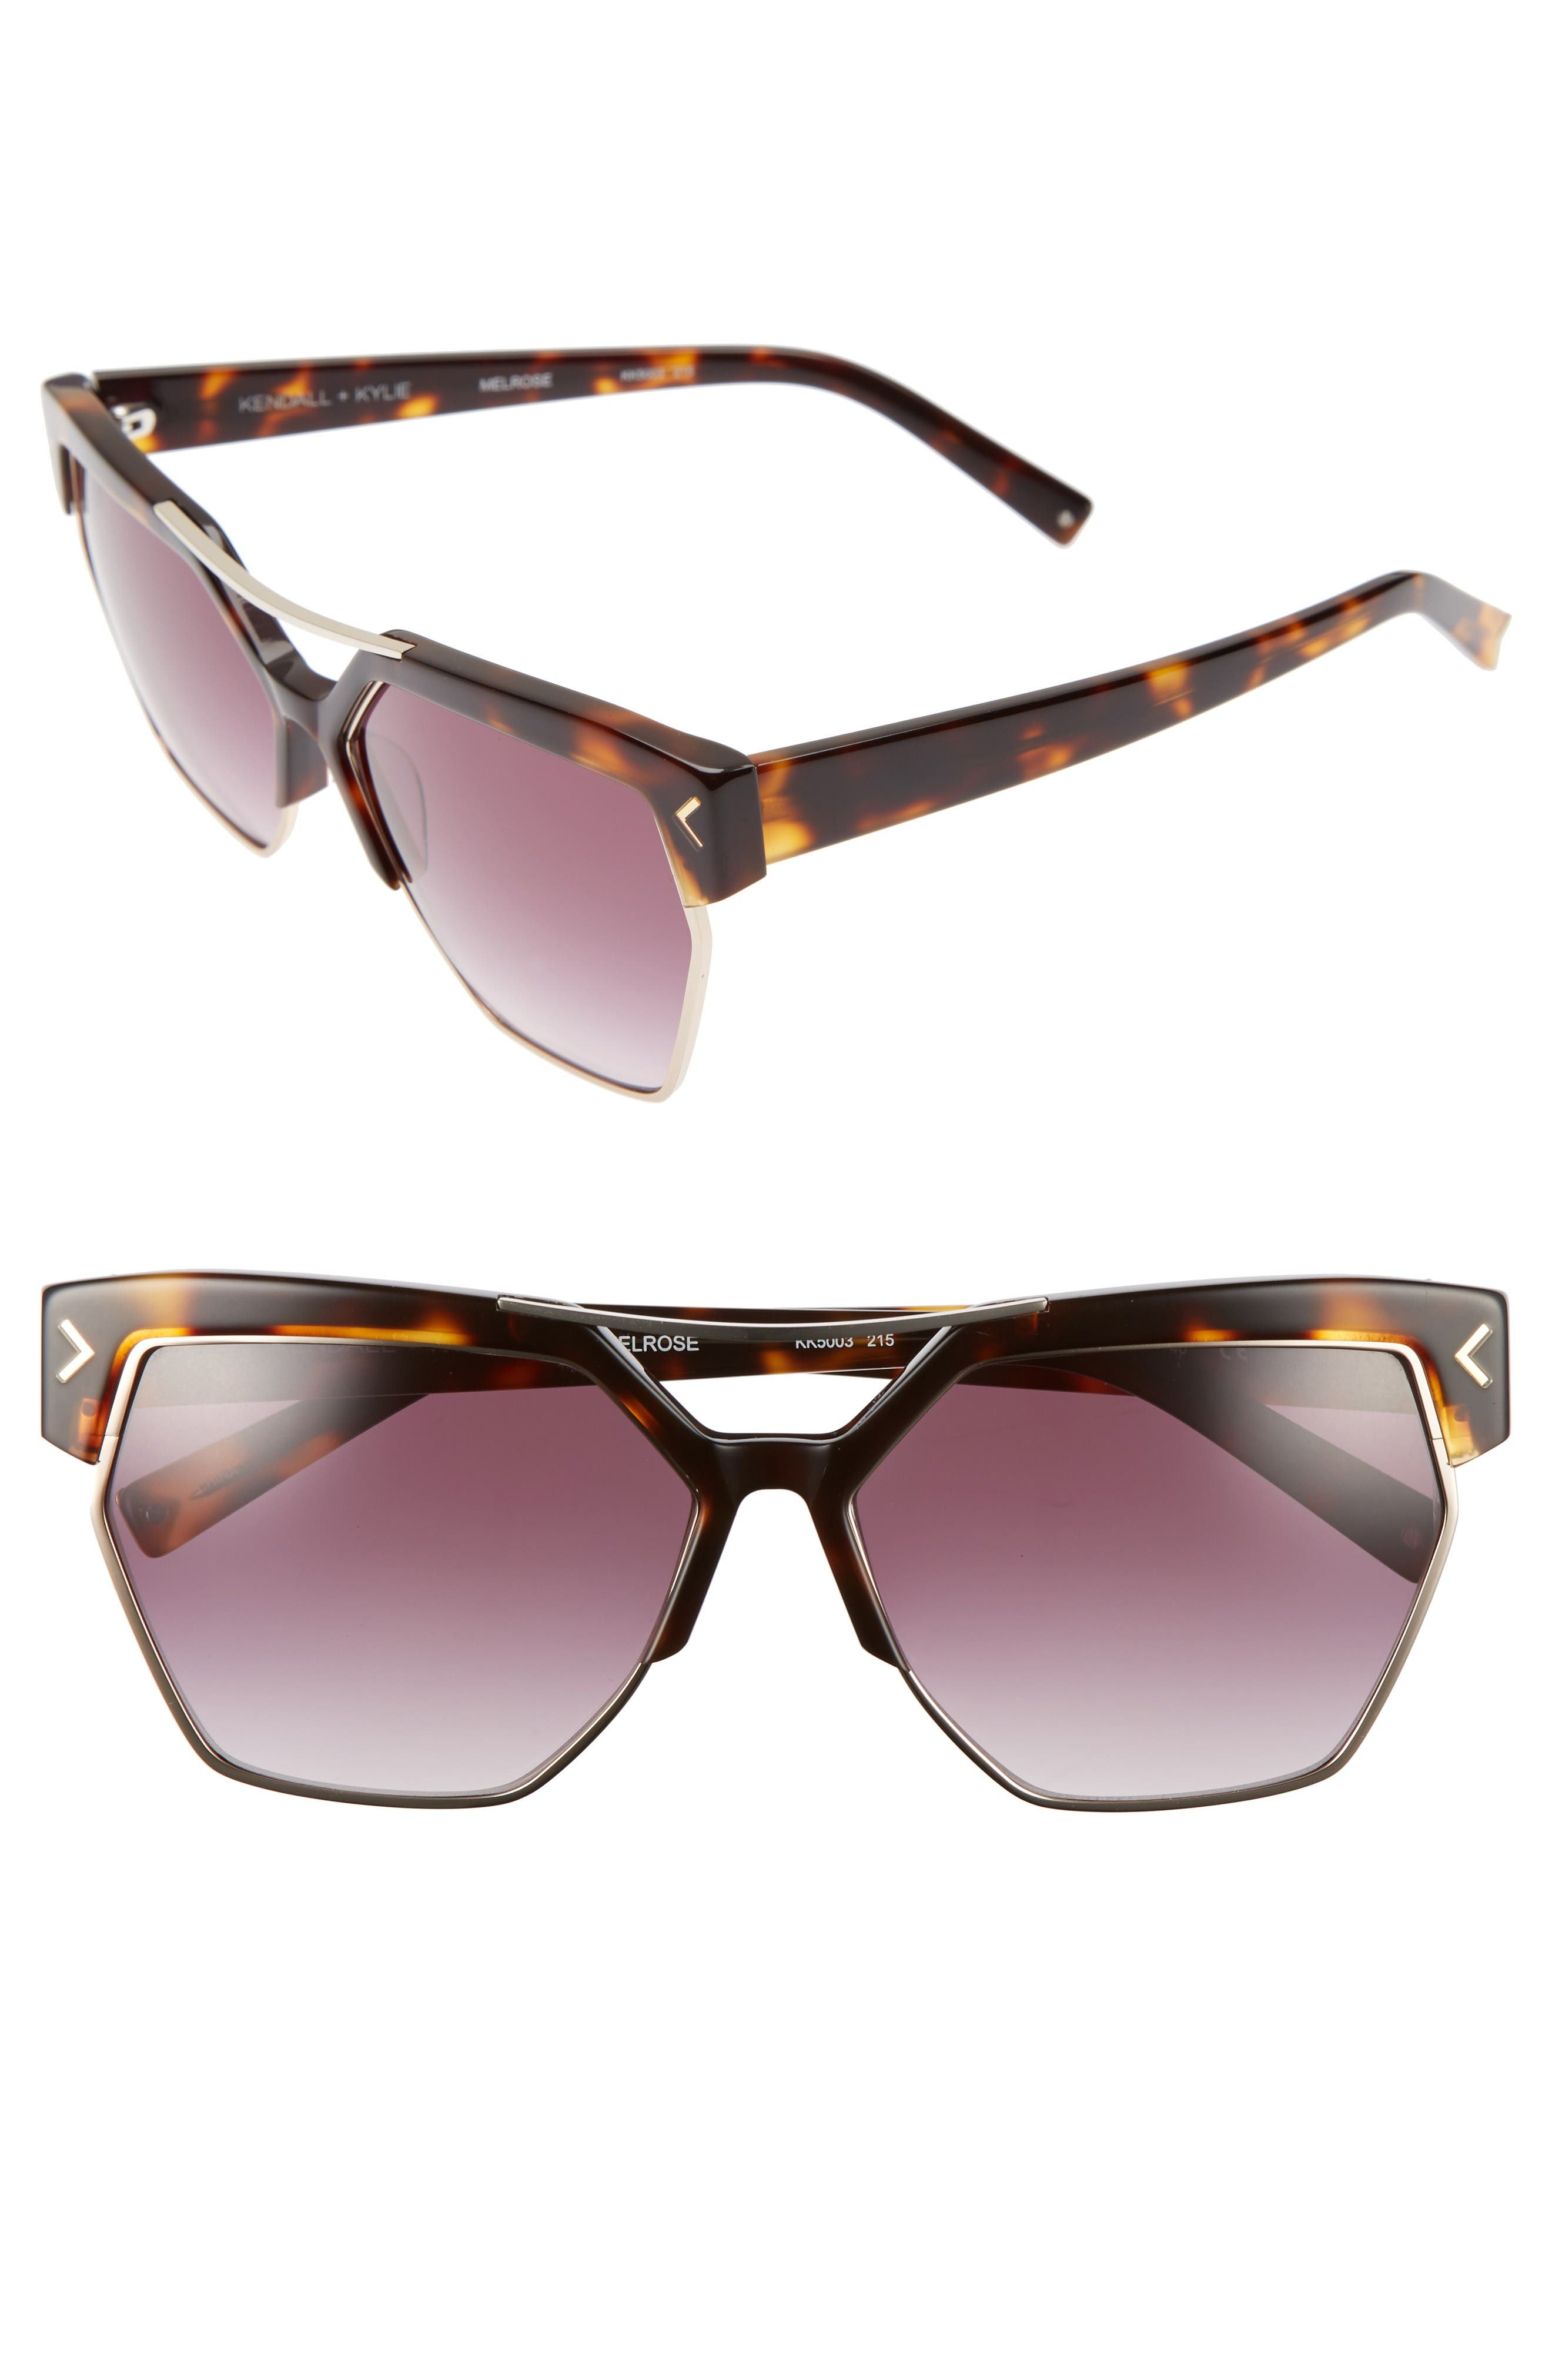 55mm Retro Sunglasses,                         Main,                         color, Dark Demi/ Shiny Gold